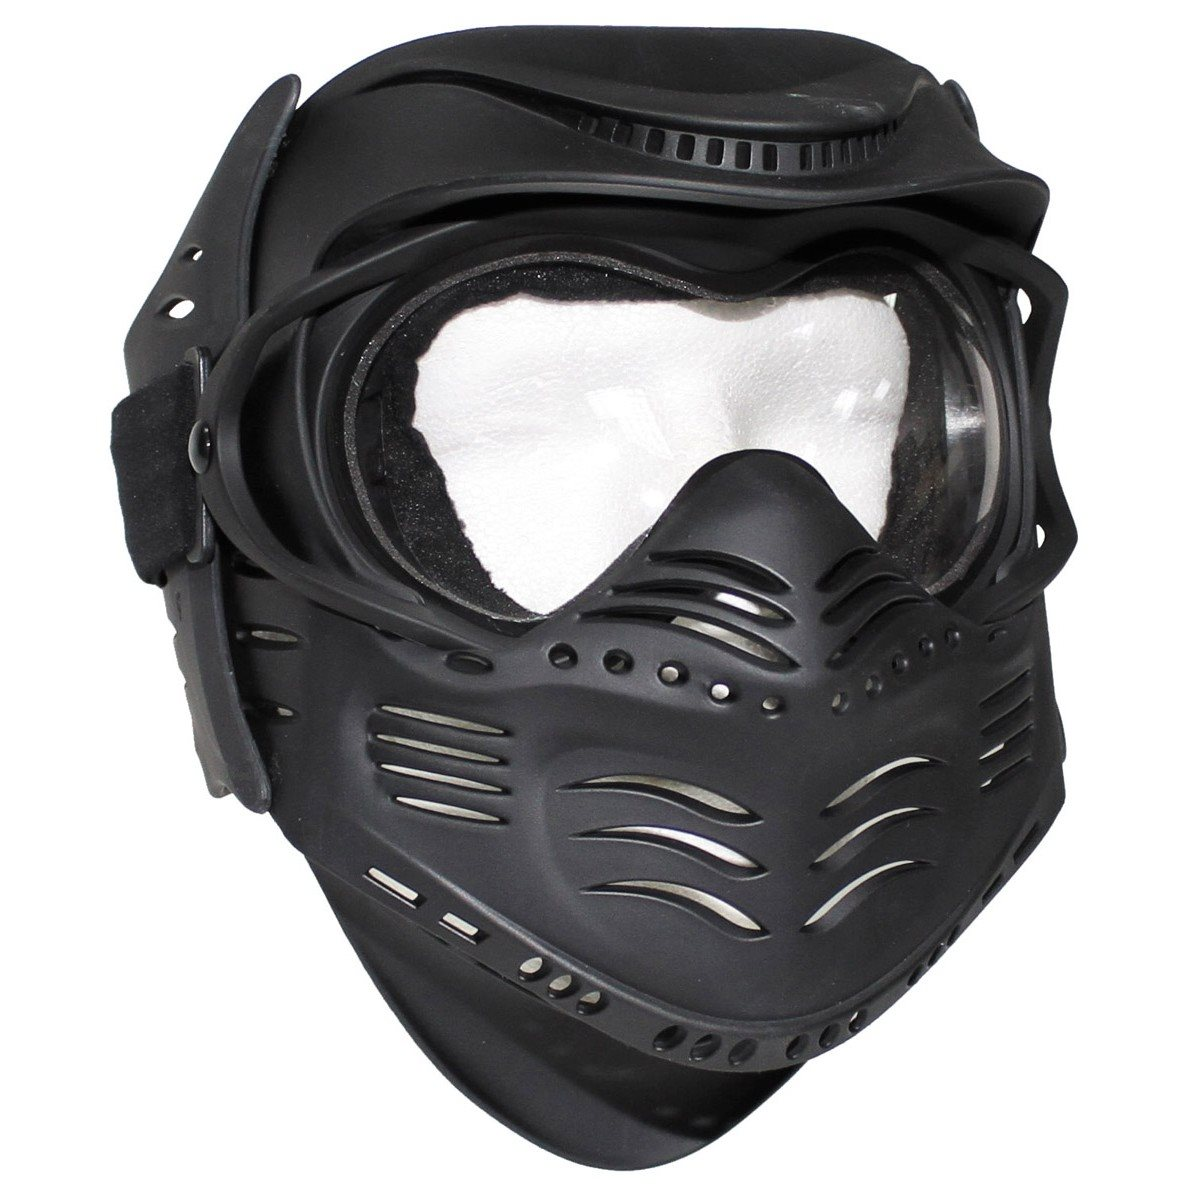 Protective paintball mask FIGHT BLACK MFH int. comp. 10610A L-11